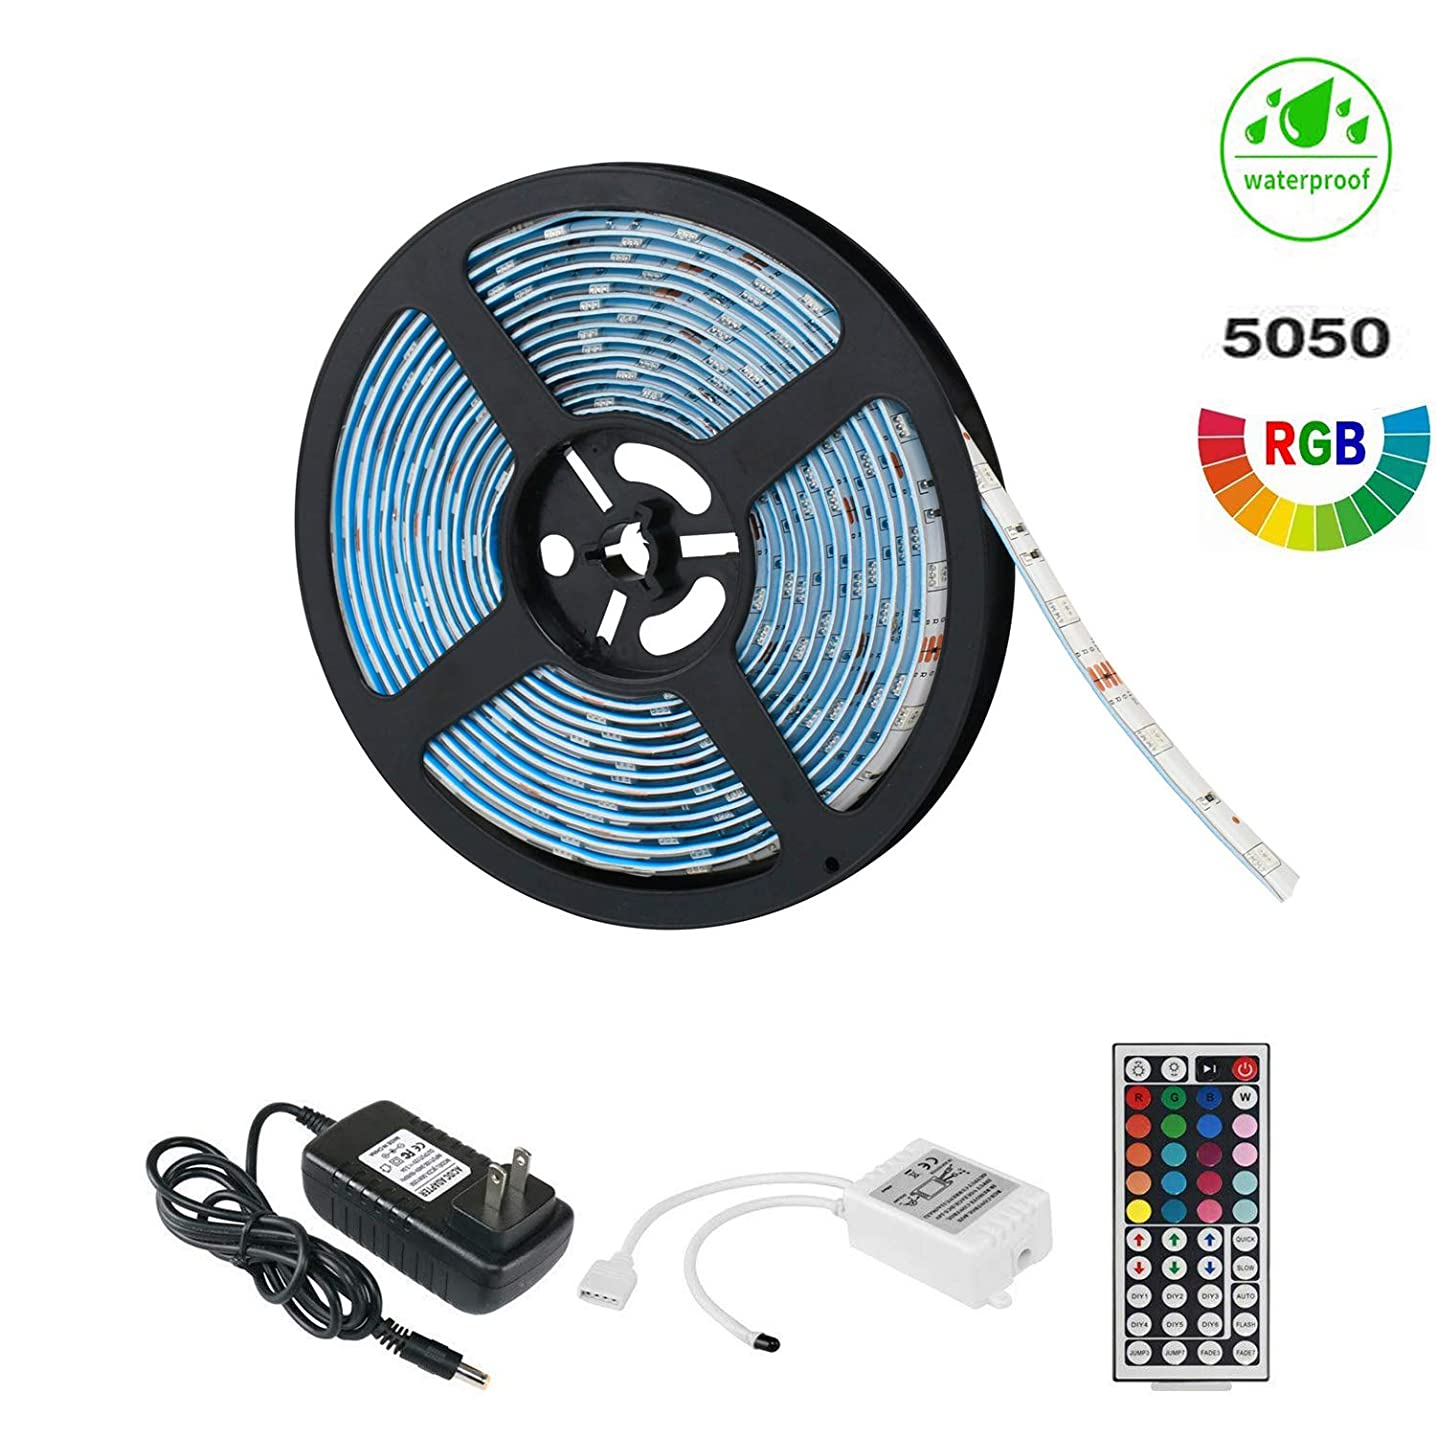 Led Light Strip Kit Waterproof 16.4ft/5m 5050 150LEDs, 12V DC RGB led Strip, Led Ribbon and Tape Light, Stronger 3M Adhesive Tape with Remote Controller for Home Kitchen Car Room Decoration Lighting